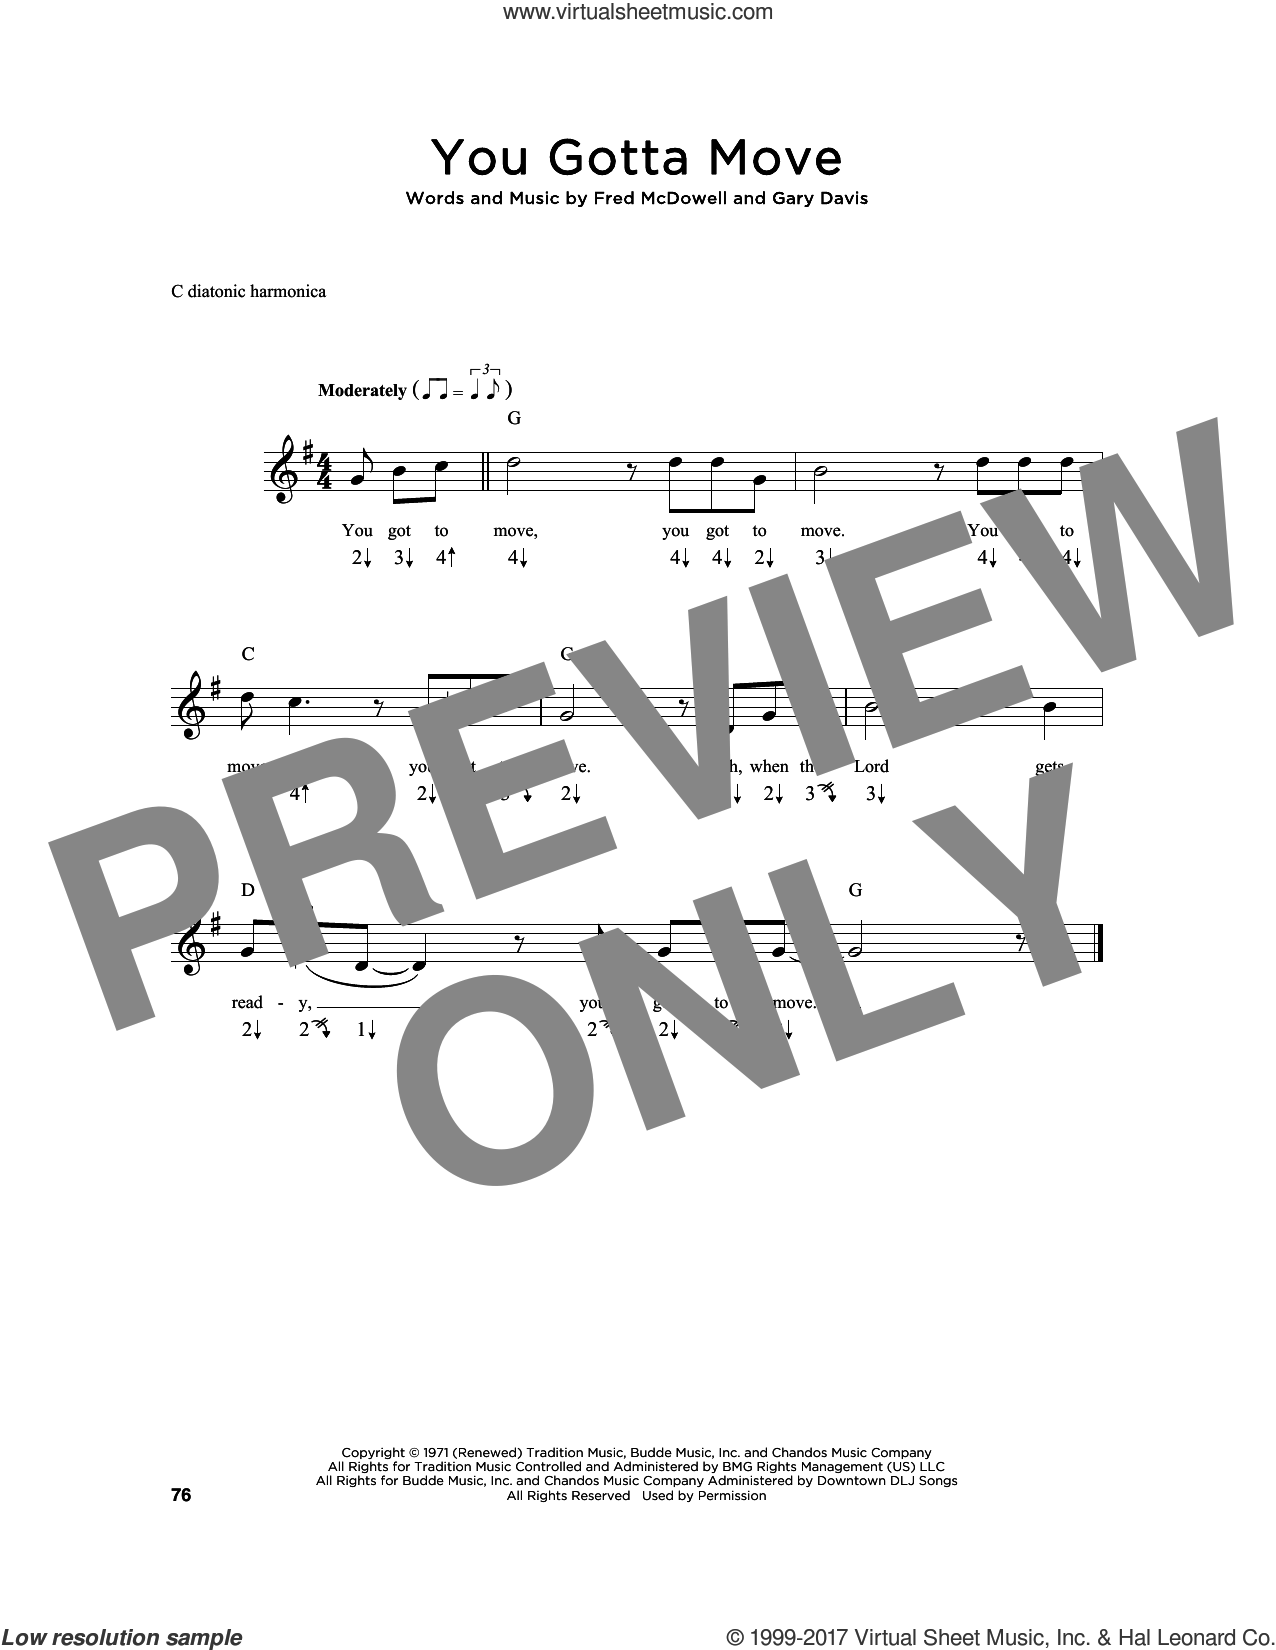 You Gotta Move sheet music for harmonica solo by Fred McDowell and Gary Davis, intermediate skill level